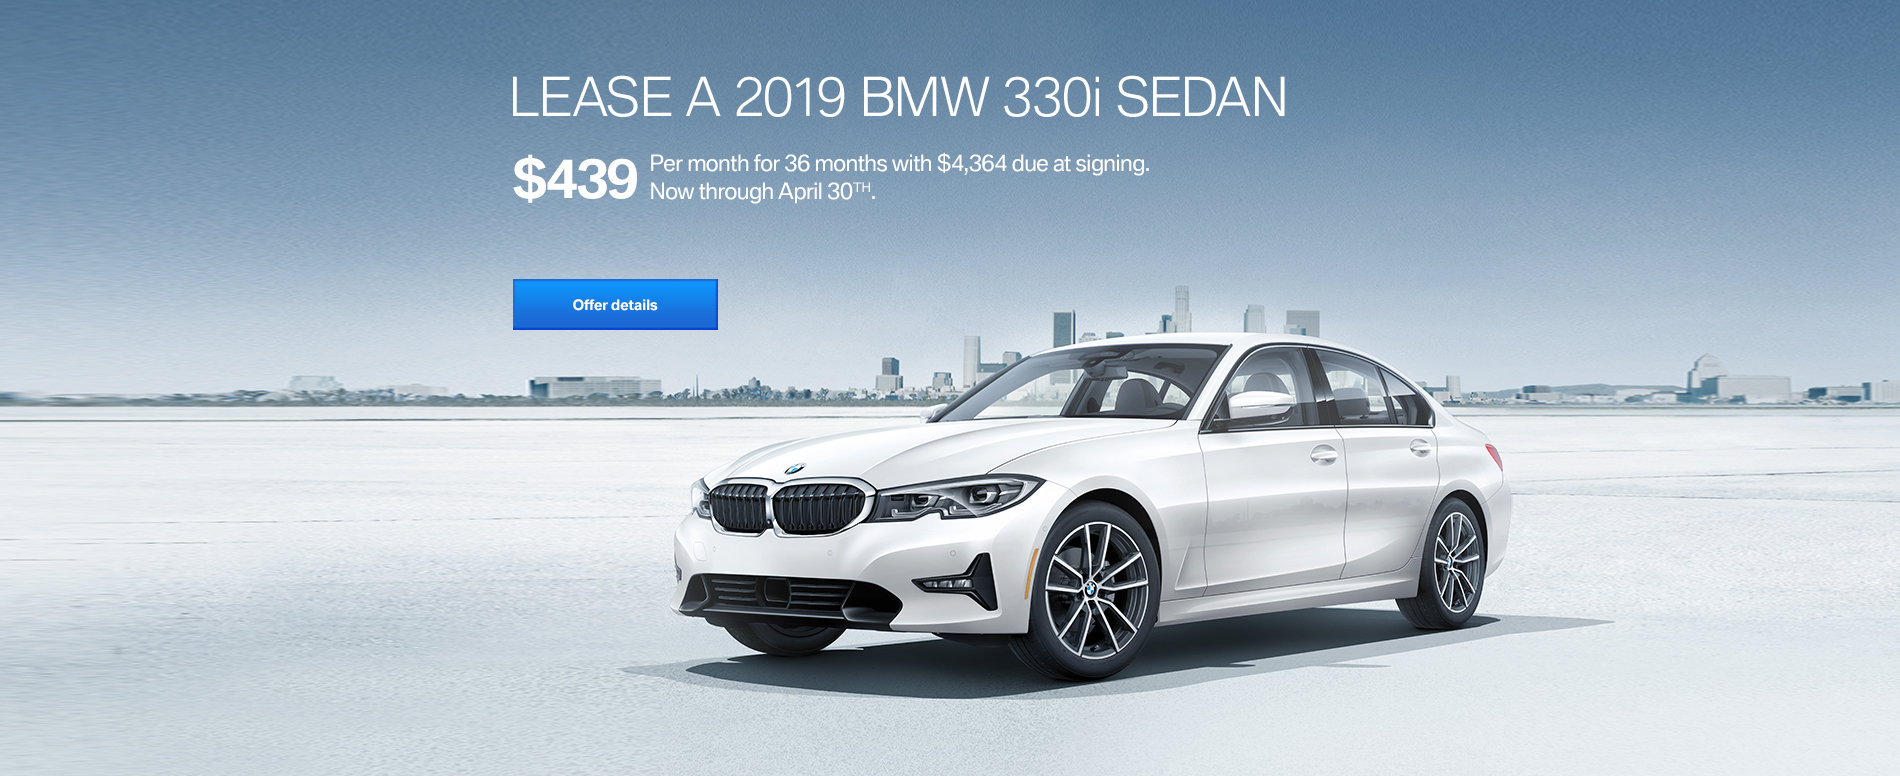 50e6c98032 LEASE A 2019 BMW 330i FOR  439 MONTH FOR 36 MONTHS WITH  4